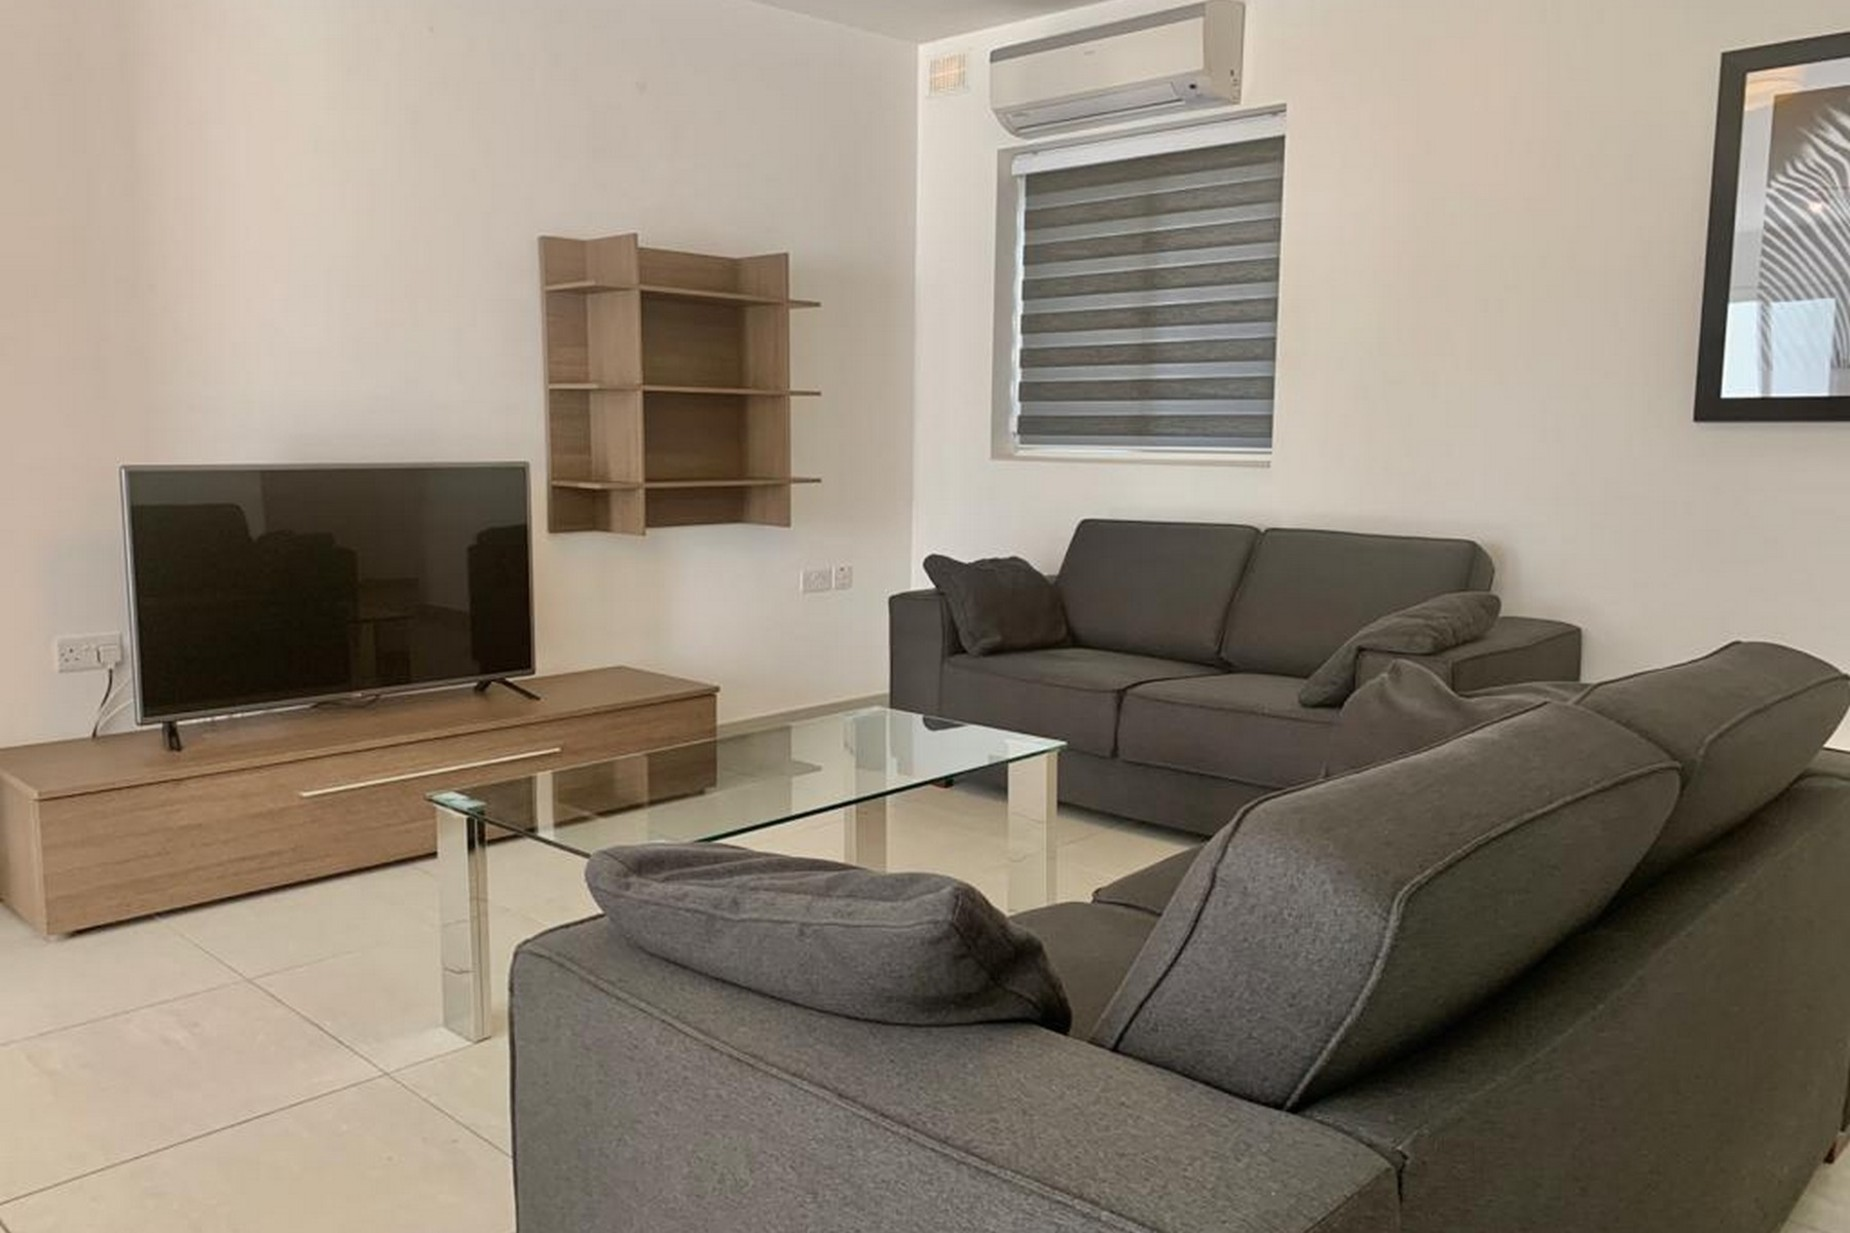 3 bed Apartment For Rent in Ibragg, Ibragg - thumb 2